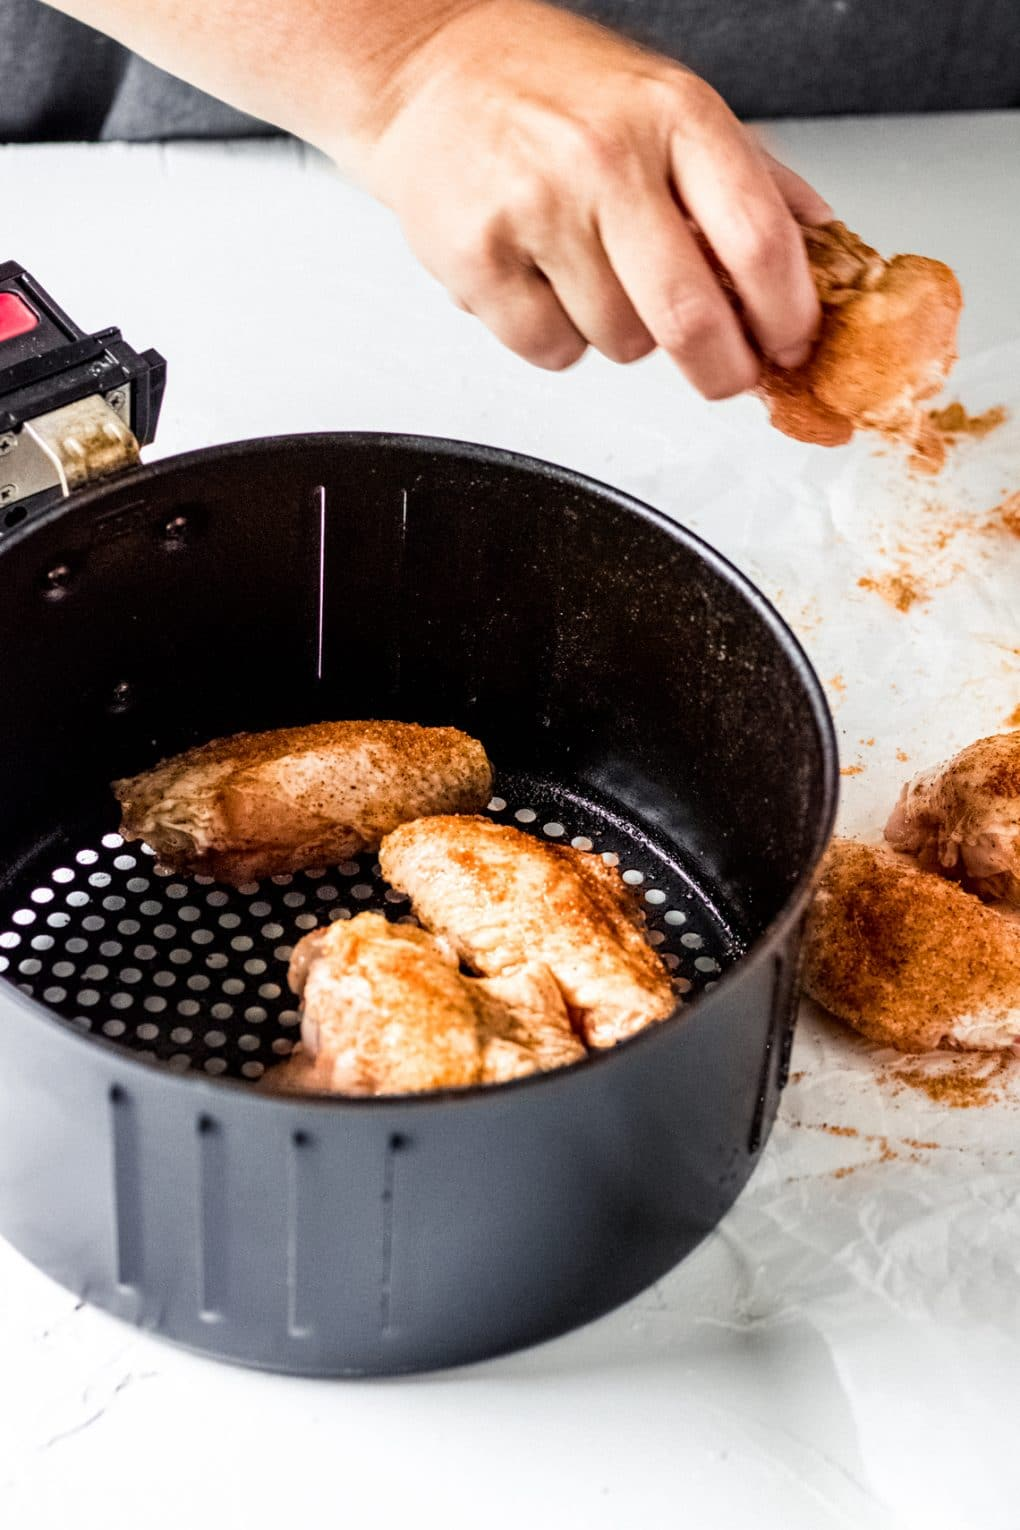 raw cajun chicken wings being placed into an air fryer basket